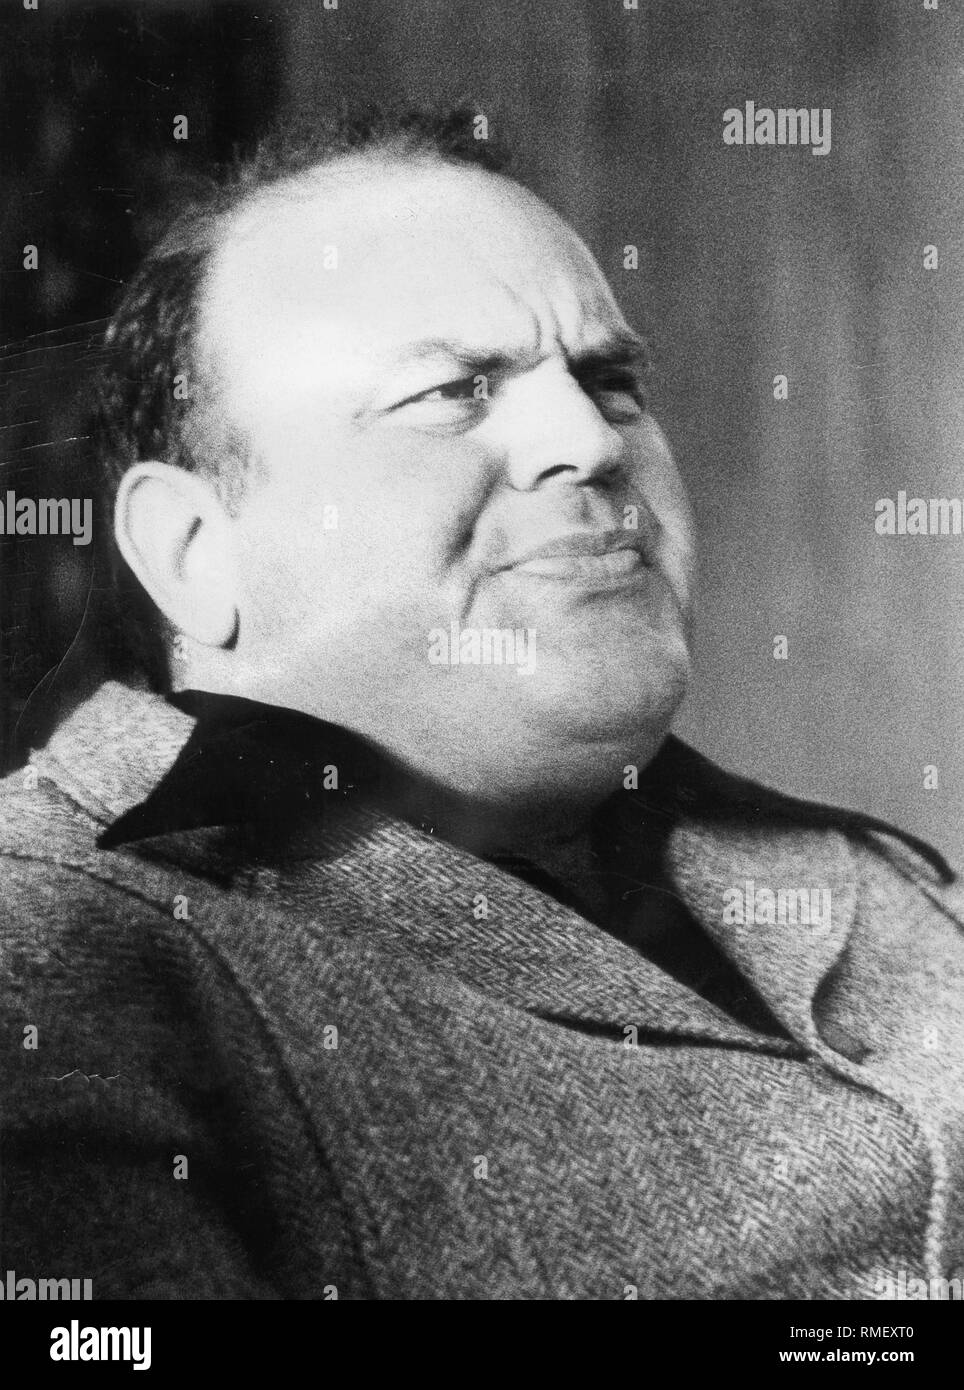 American actor Dan Blocker (b. 10.12.1928 - d. 13.05.1972), became world famous with his role as heavyweight Hoss Cartwright in the western TV series 'Bonanza' (1959-1973). - Stock Image